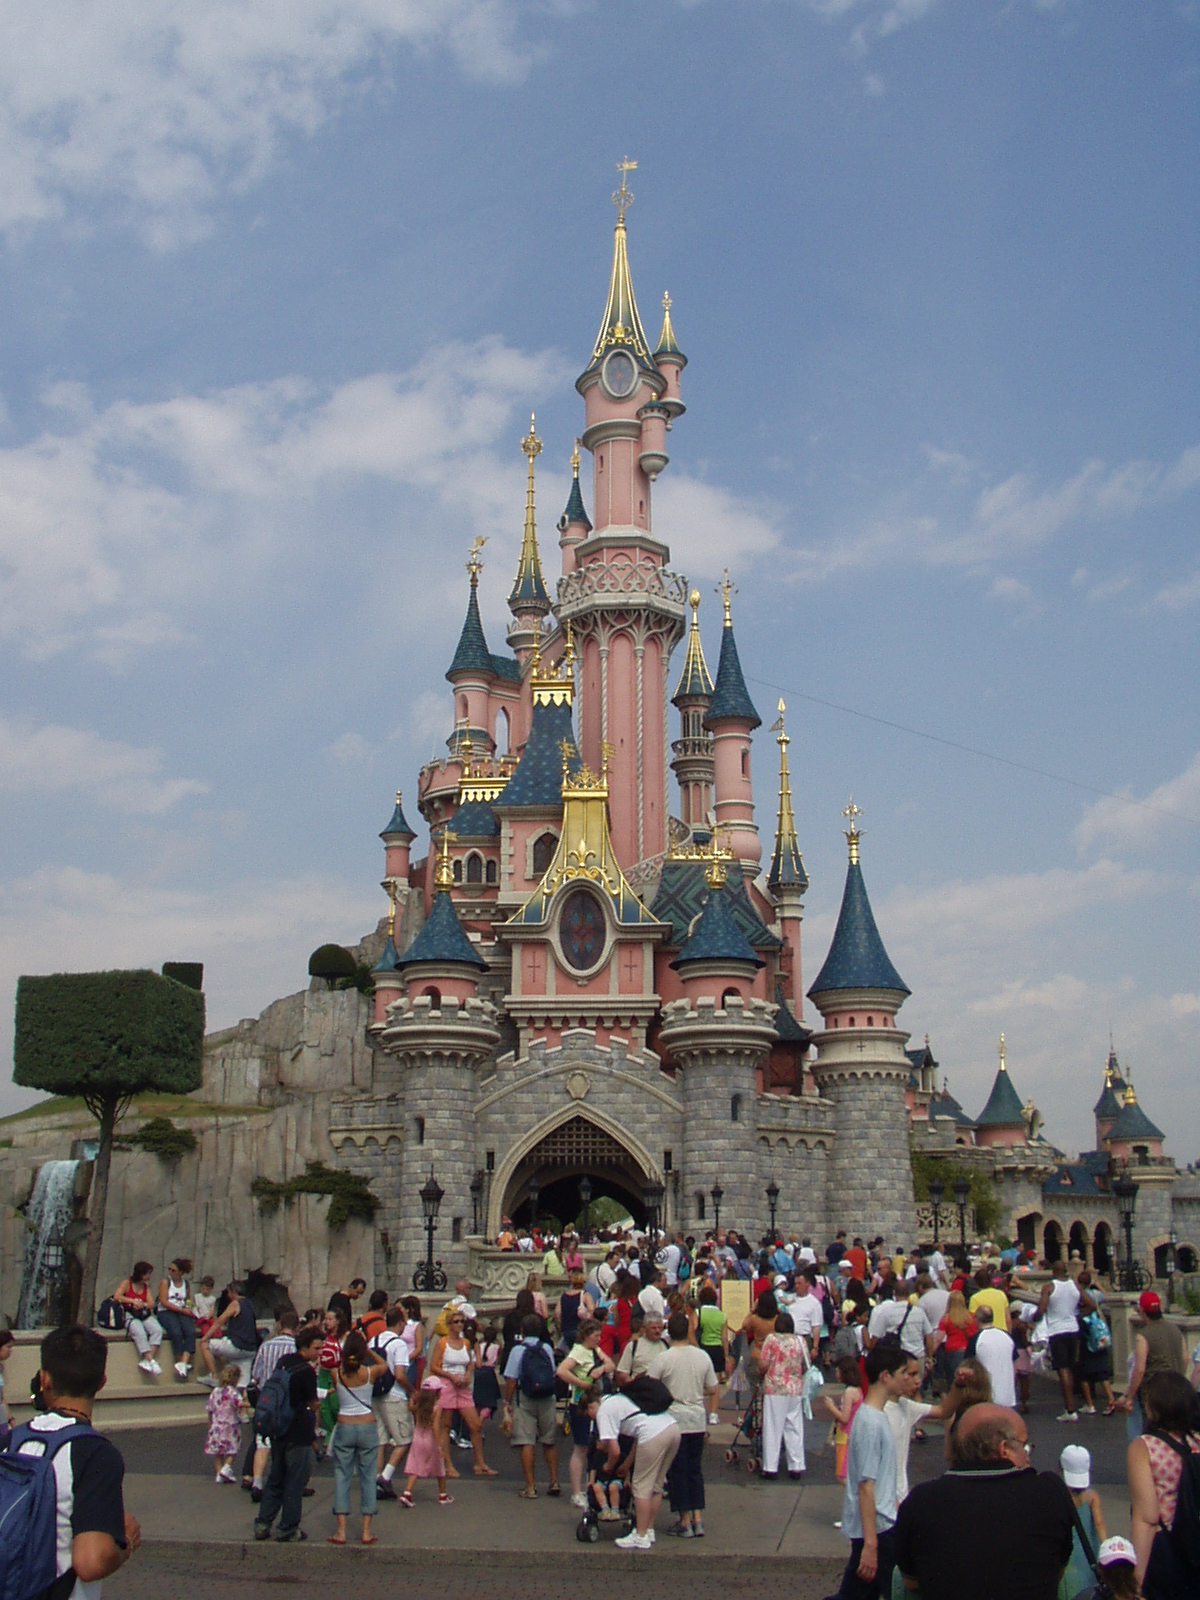 Europe's number one tourist destination, disneyland paris has